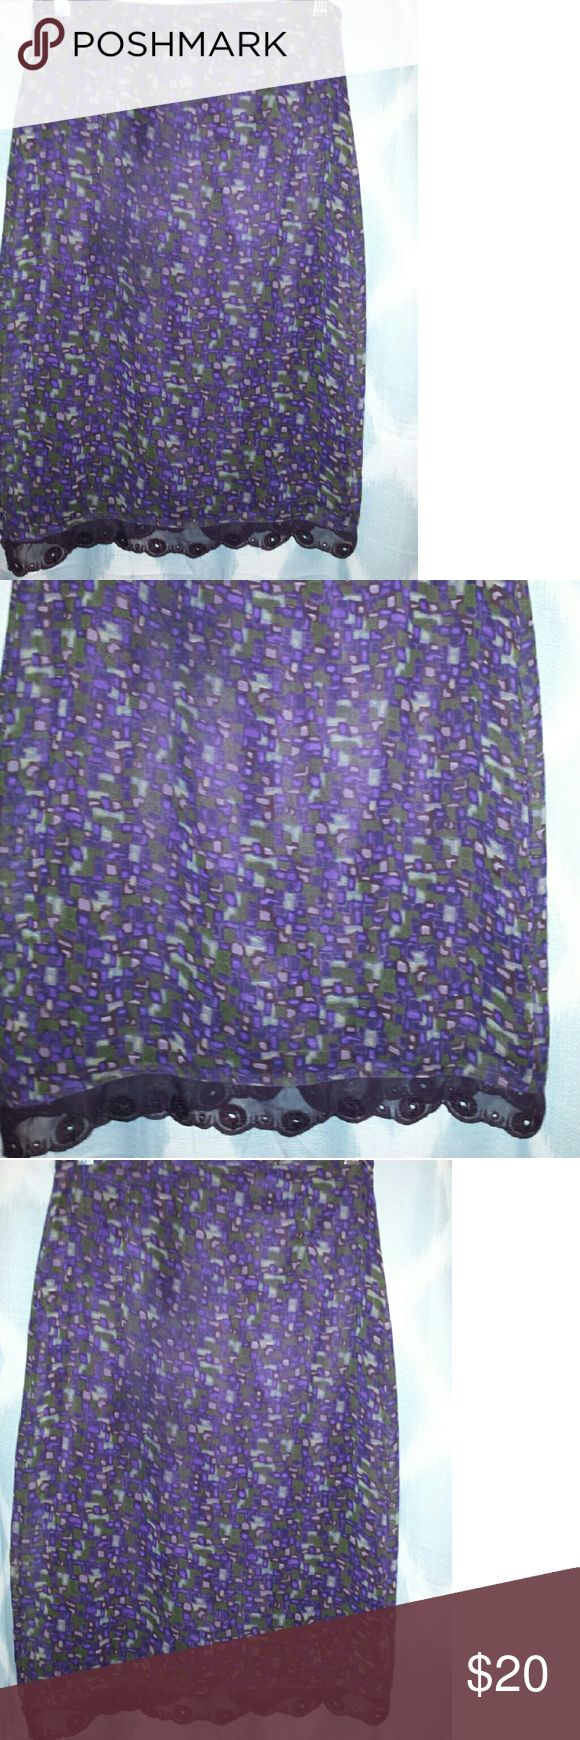 "Cynthia Steffi purple mosaic lace hem skirt Sheer, lined A-line skirt. Back zip and button closure, fits tts, excellent condition. Waist 13.5"" Length 25"" Cynthia Steffe Skirts"